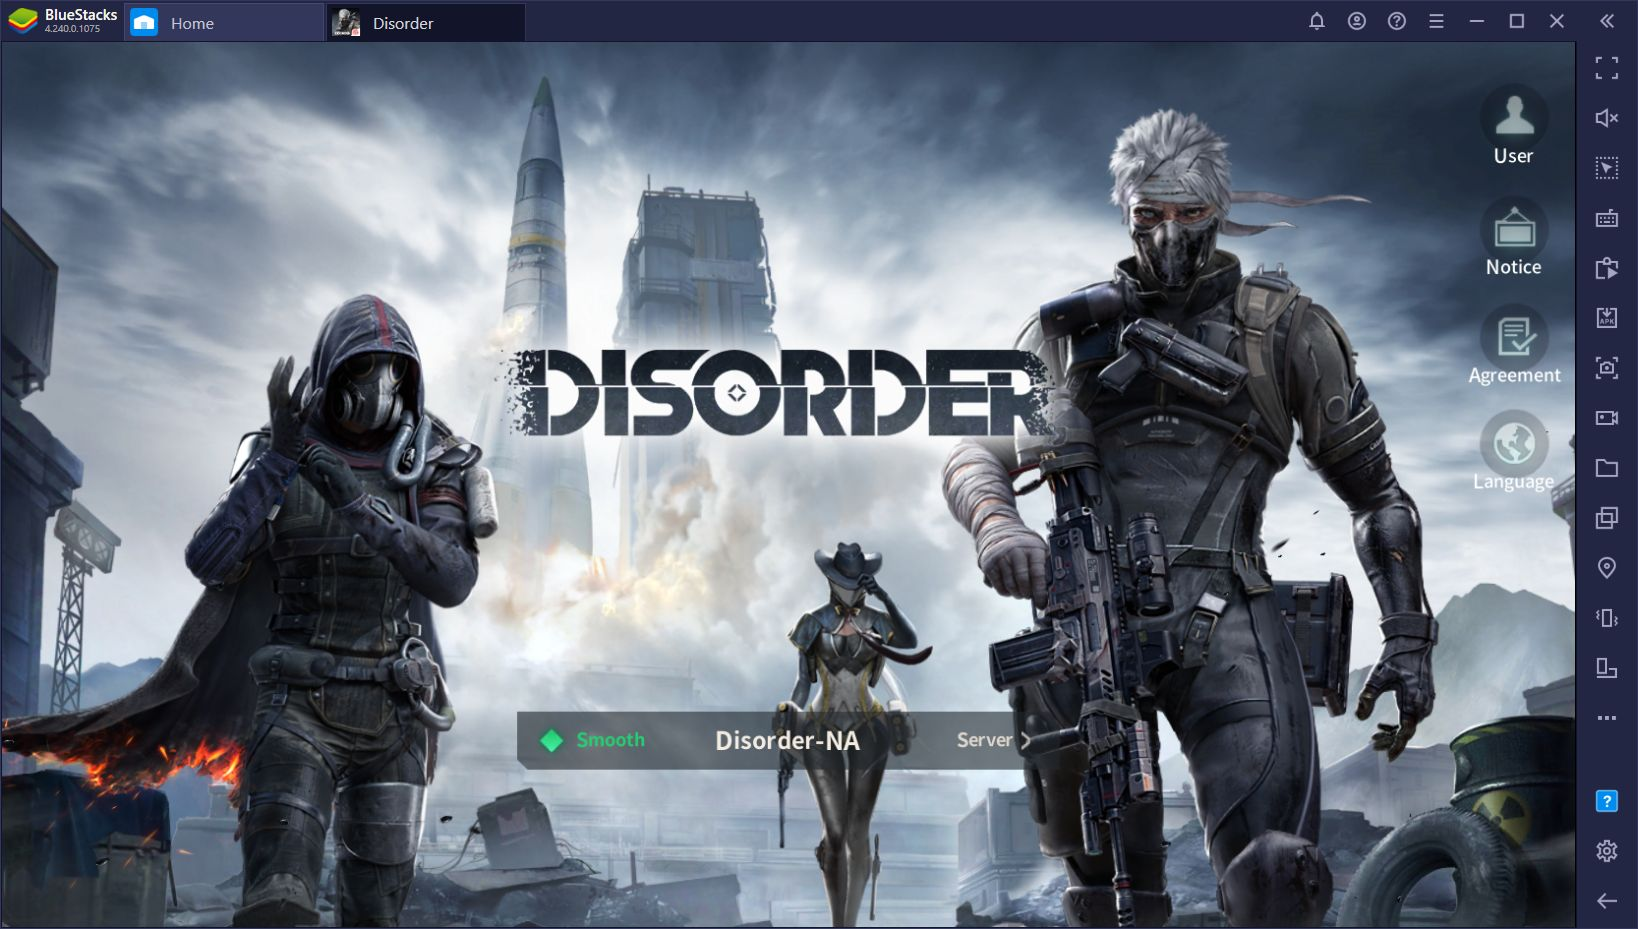 Netease's Disorder on PC – How to Play This Shooter Game on Your Computer With Superior Controls